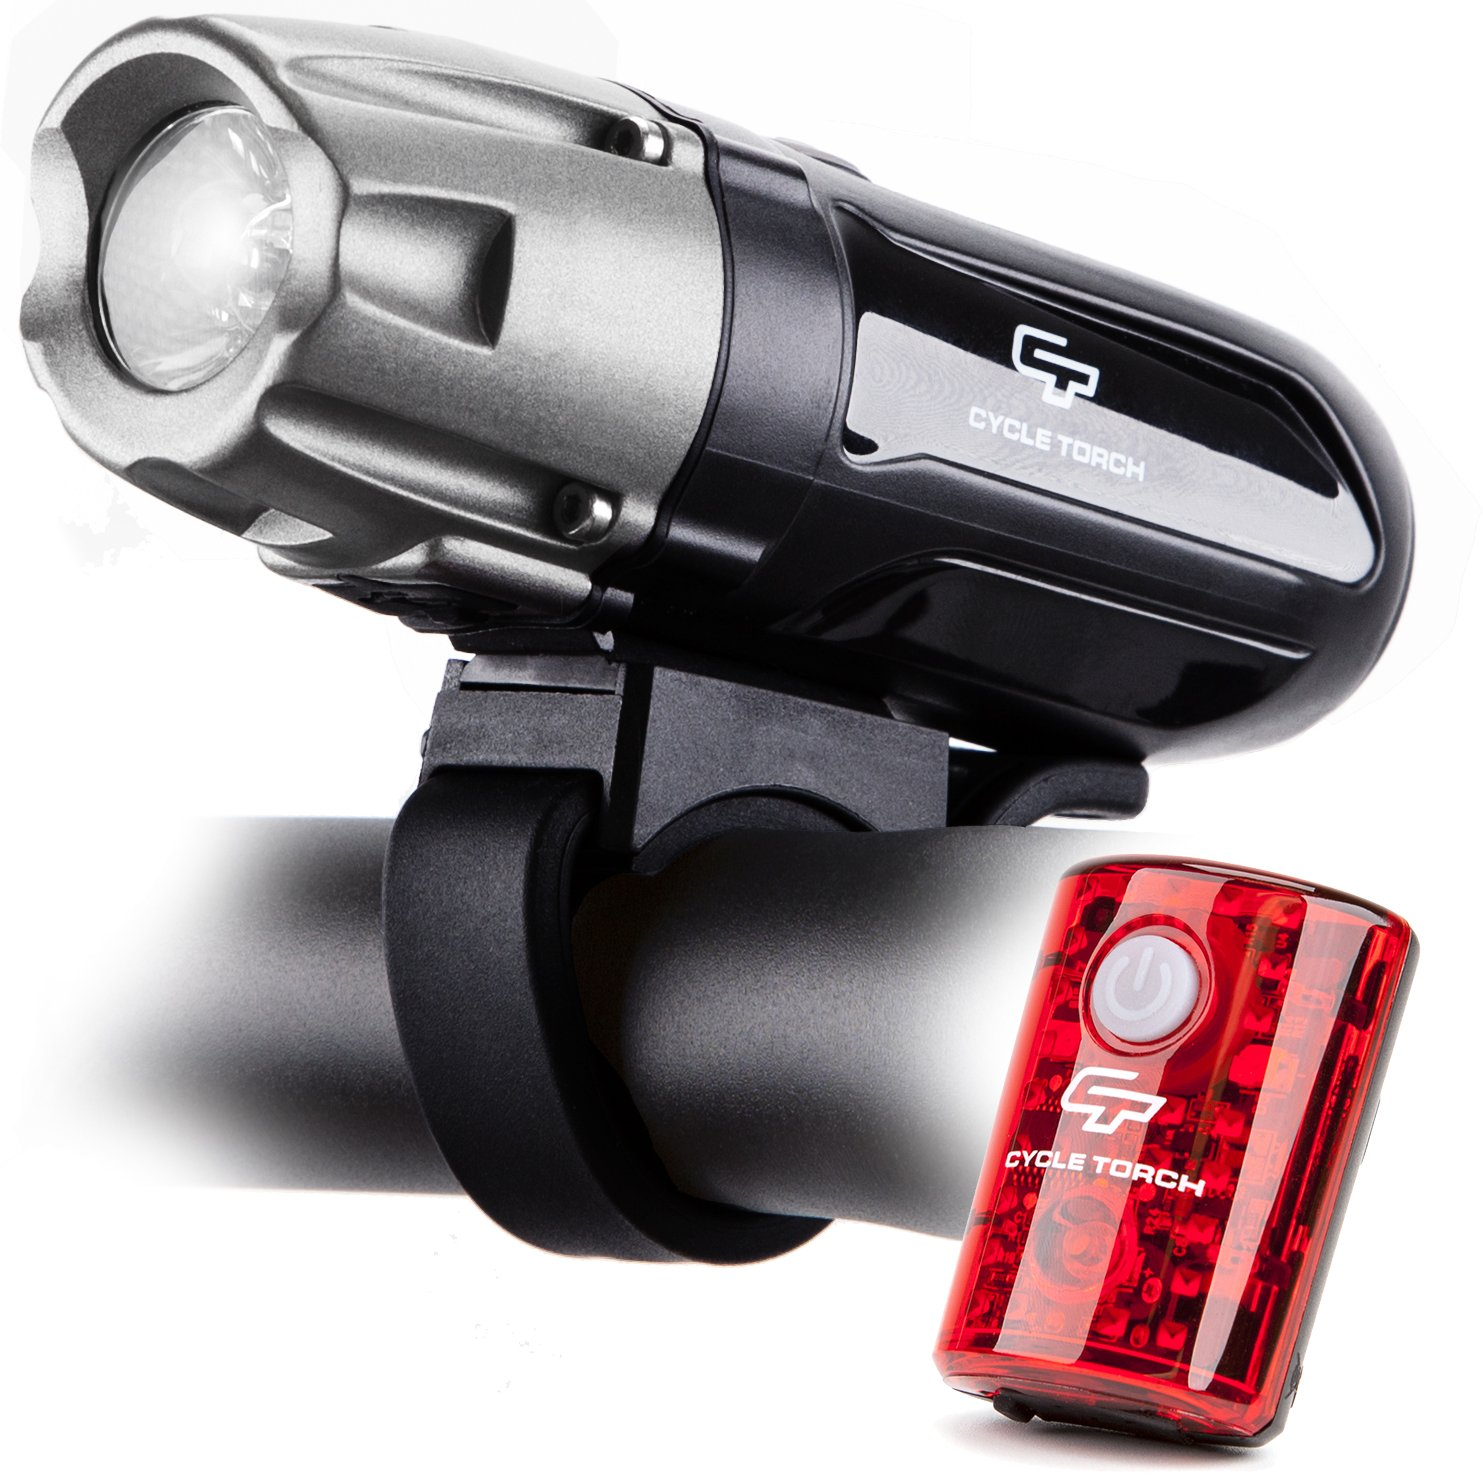 Cycle Torch Shark 550R USB Rechargeable Bike Light Set